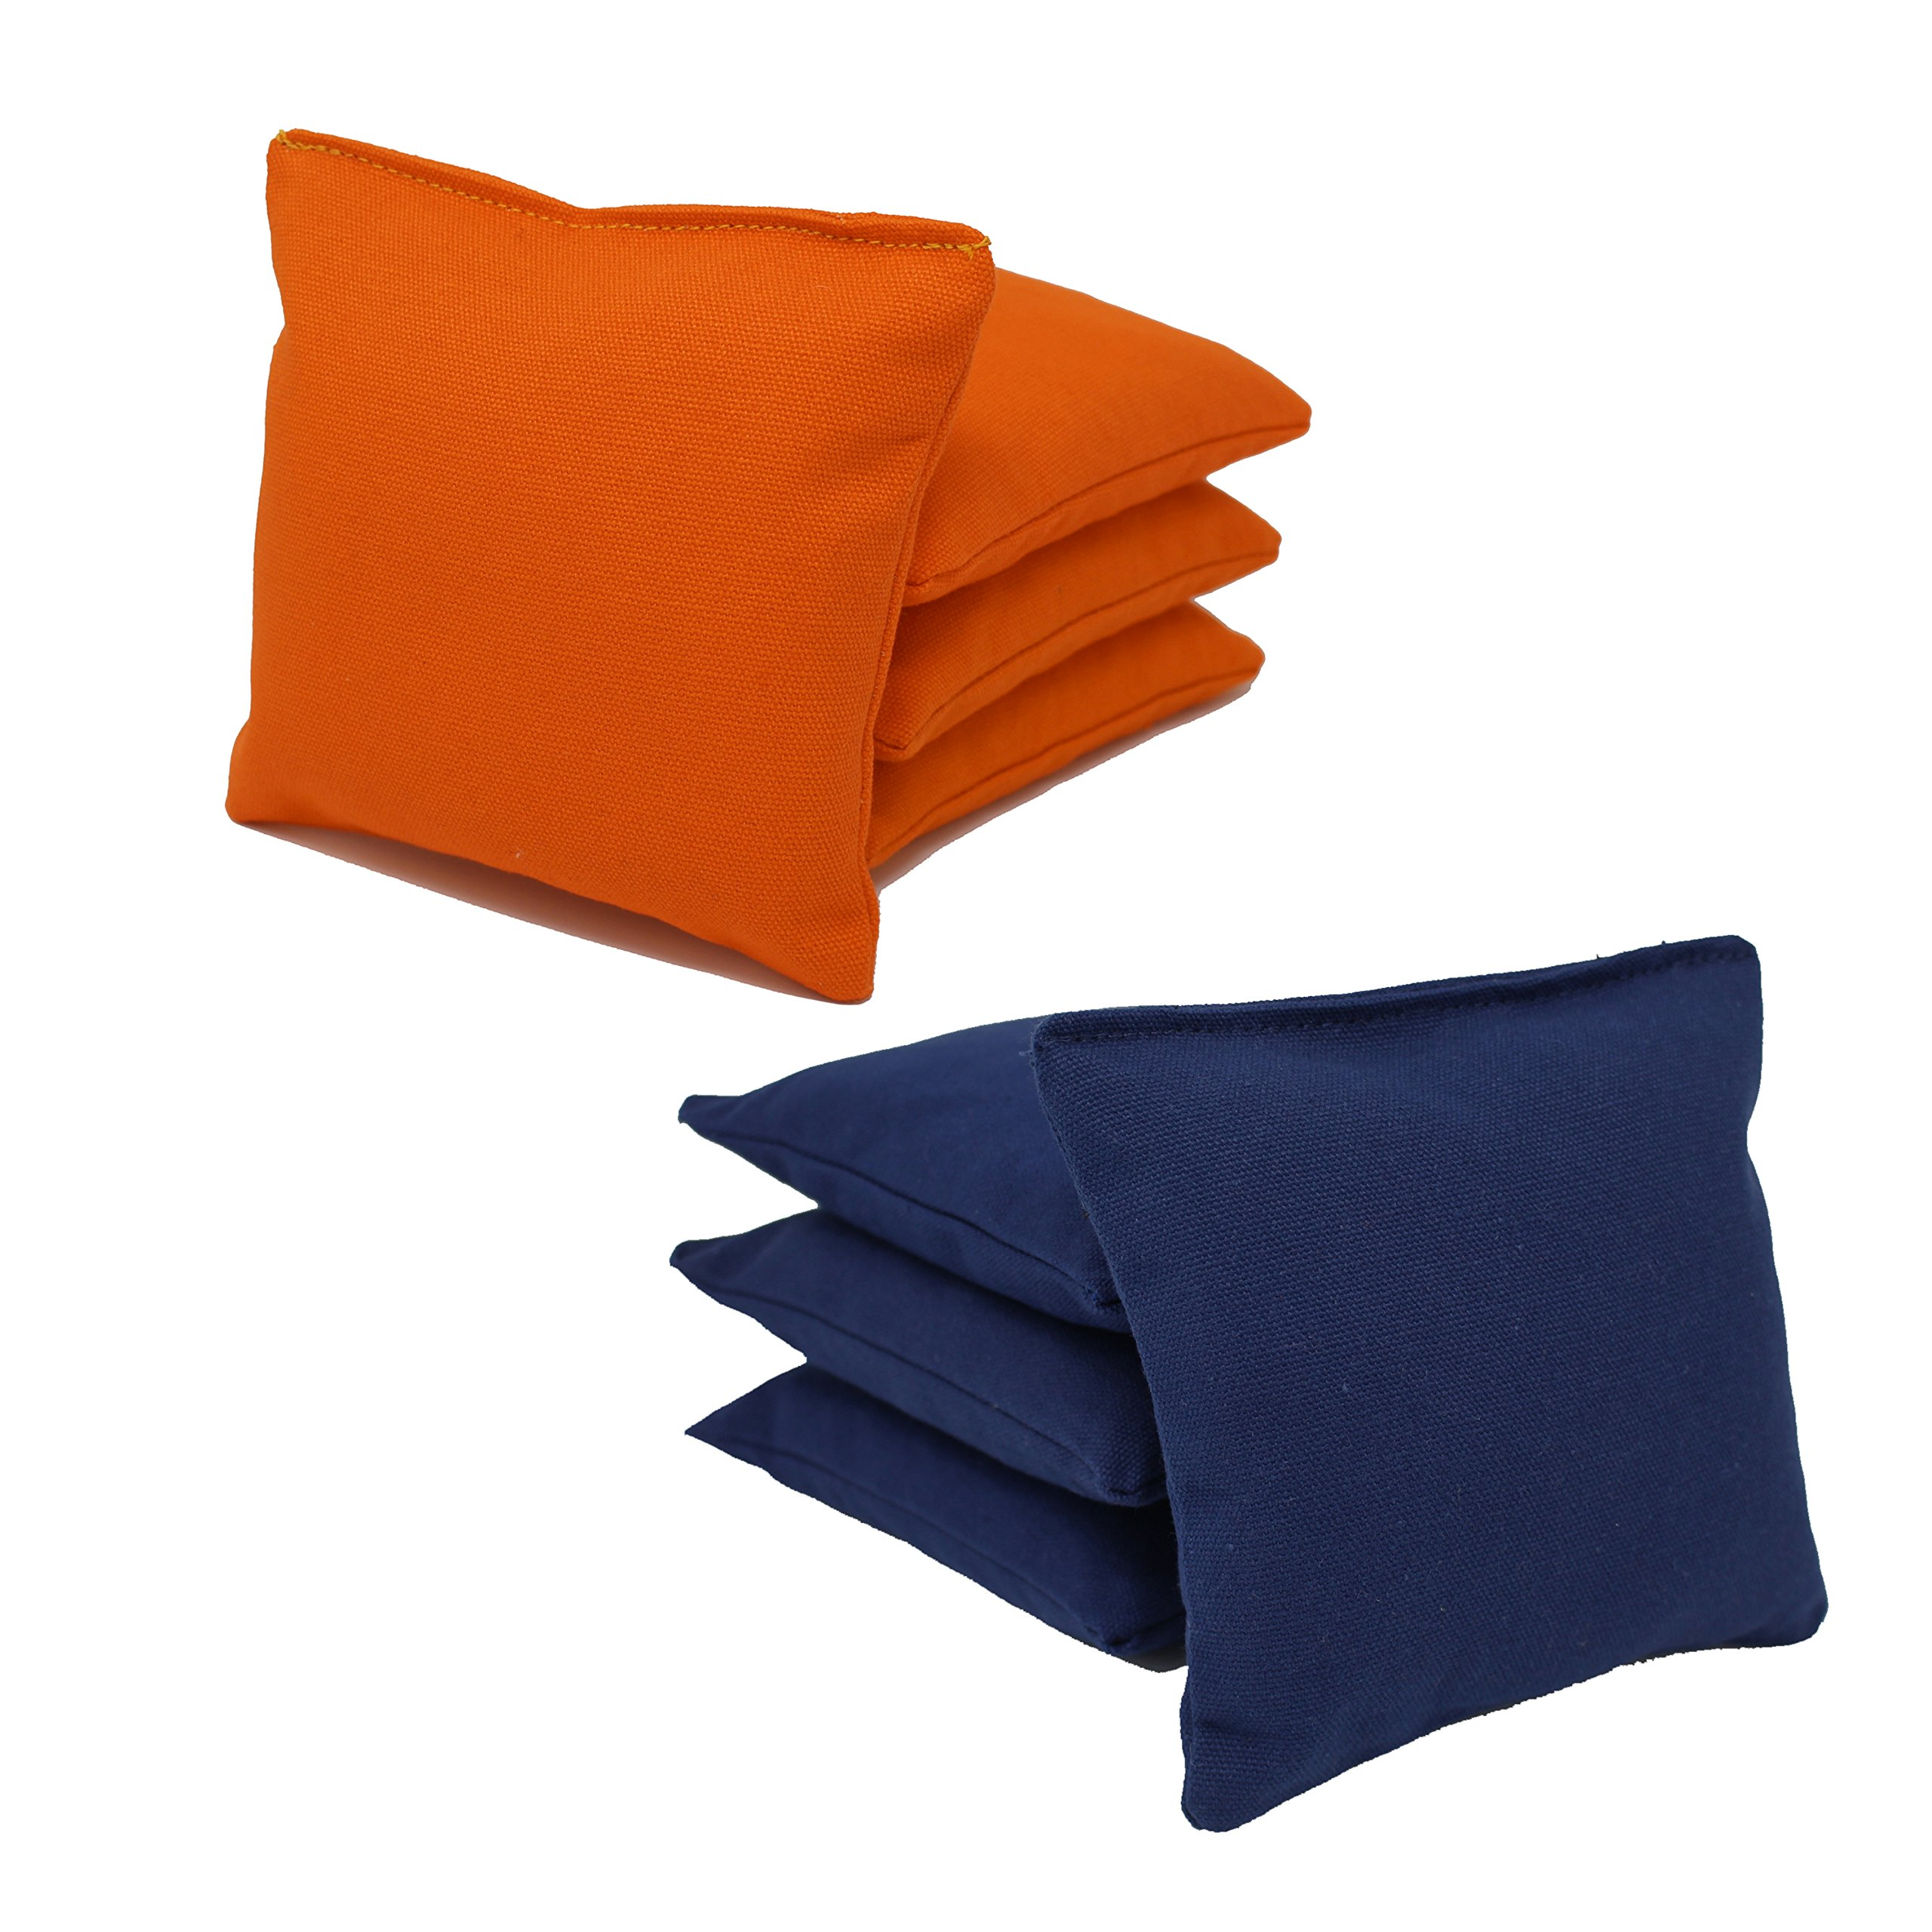 Cornhole Bags Set - (4 Navy Blue, 4 Orange) By Free Donkey Sports by Free Donkey Sports